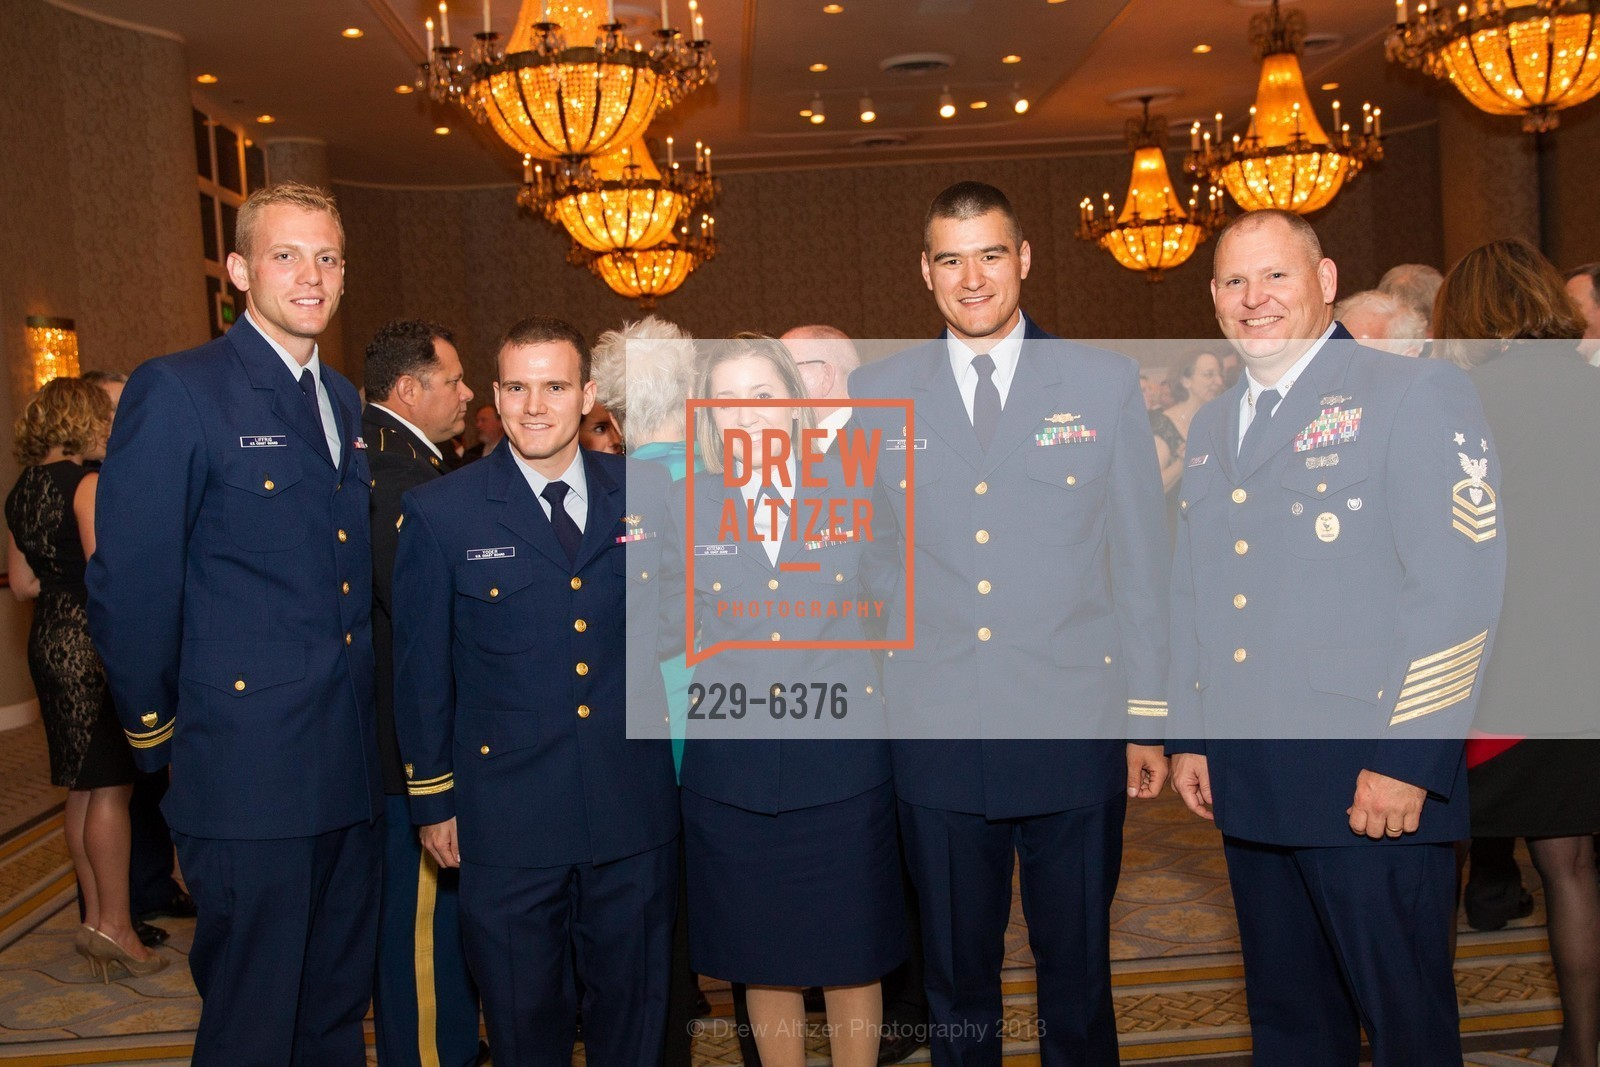 Joseph Liffrig, Rory Yoder, JG Joshua Kitenko, COAST GUARD FOUNDATION Presents Pacific Awards Dinner, US, April 25th, 2013